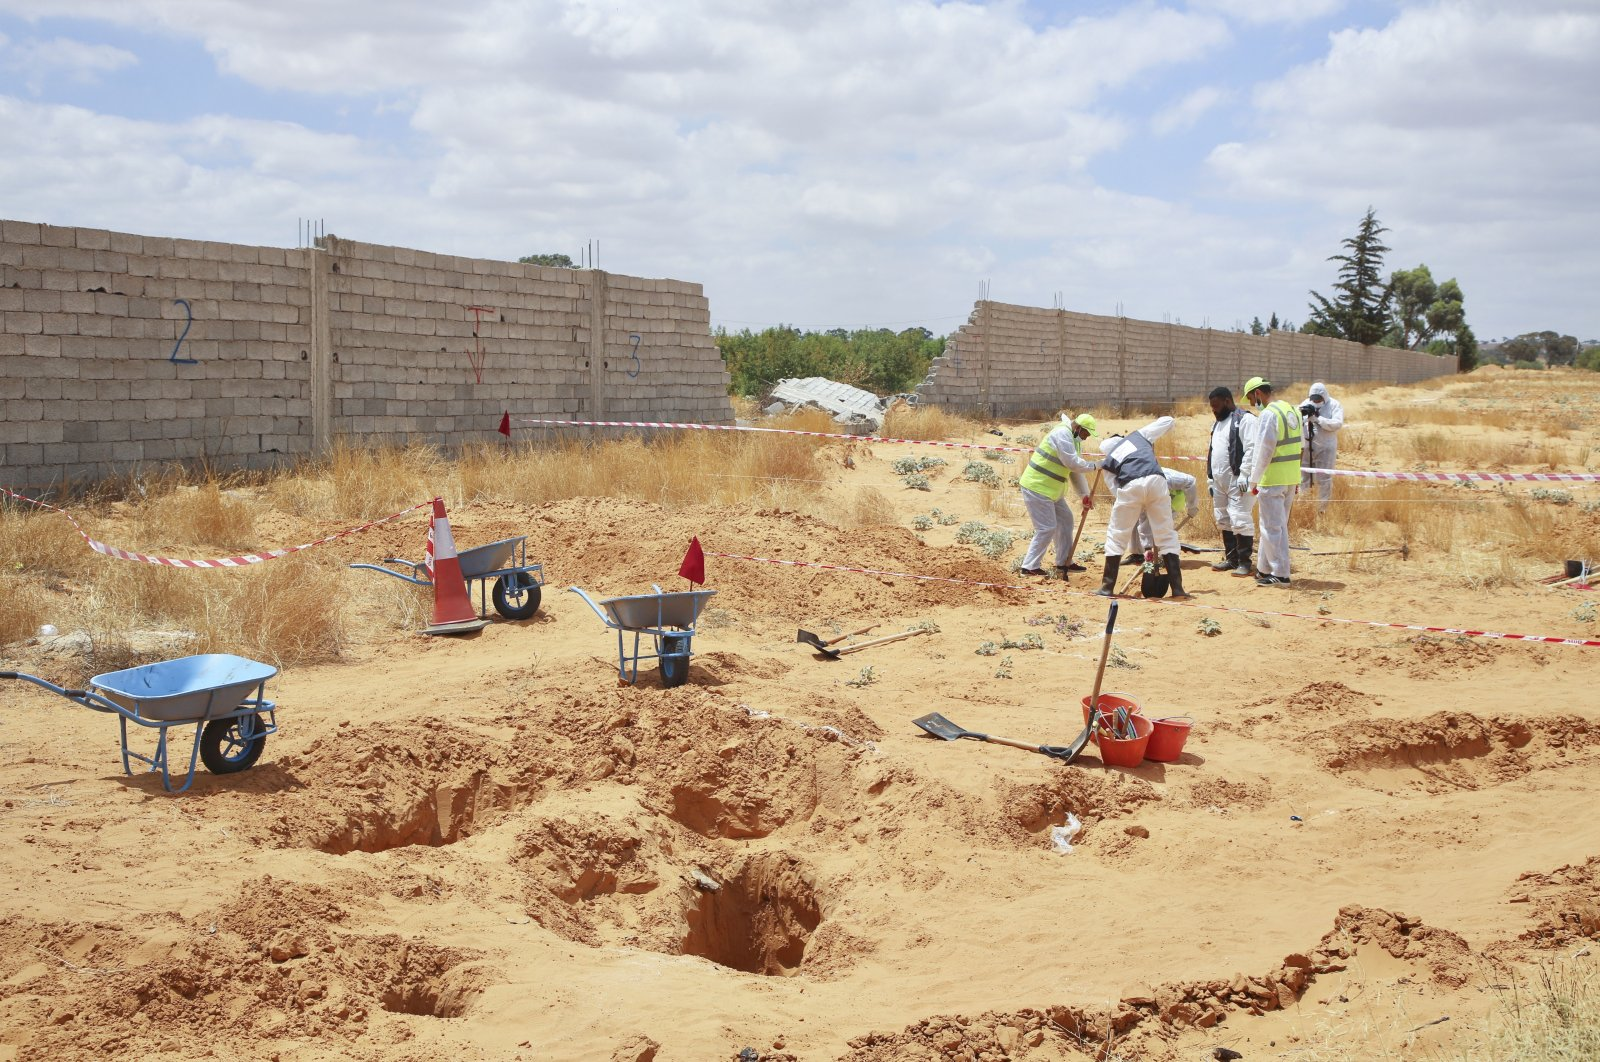 The Libyan Ministry of Justice employees dig at a site of a suspected mass grave in the town of Tarhuna, Libya, June 23, 2020. (AP File Photo)